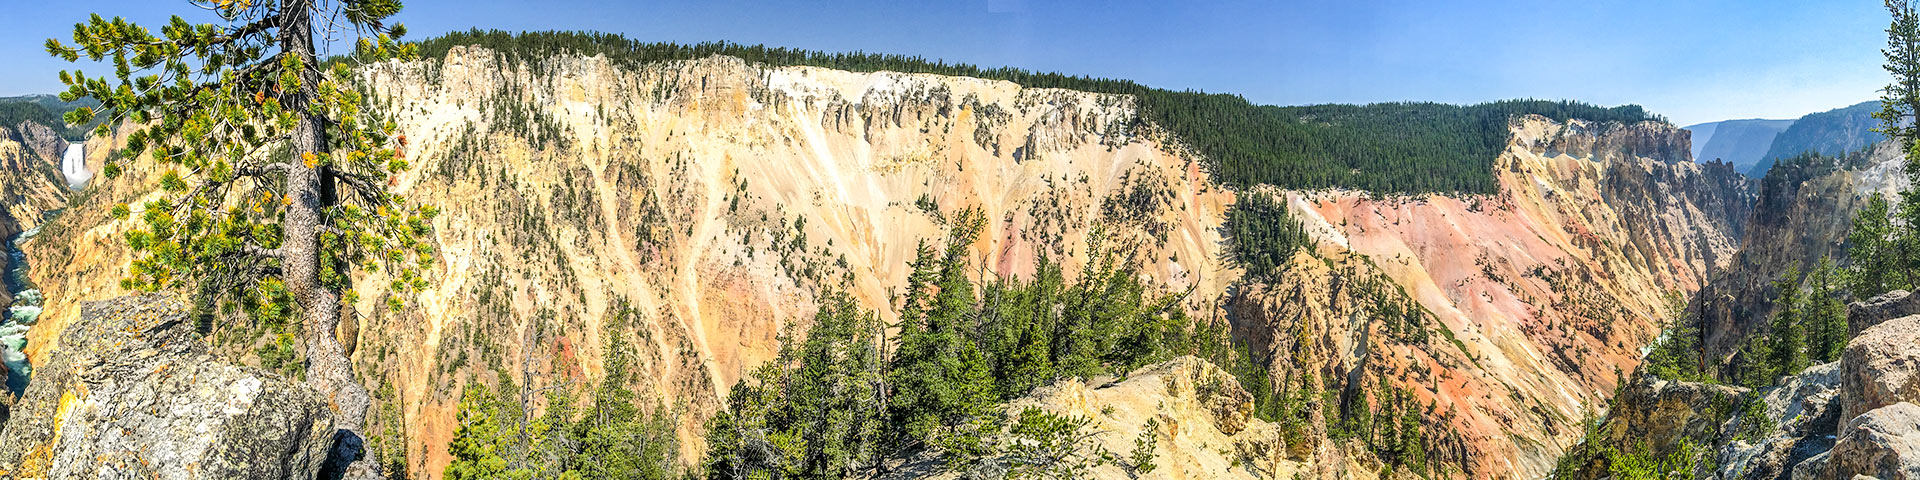 Views from the Artist Point to Point Sublime Hike in Yellowstone National Park